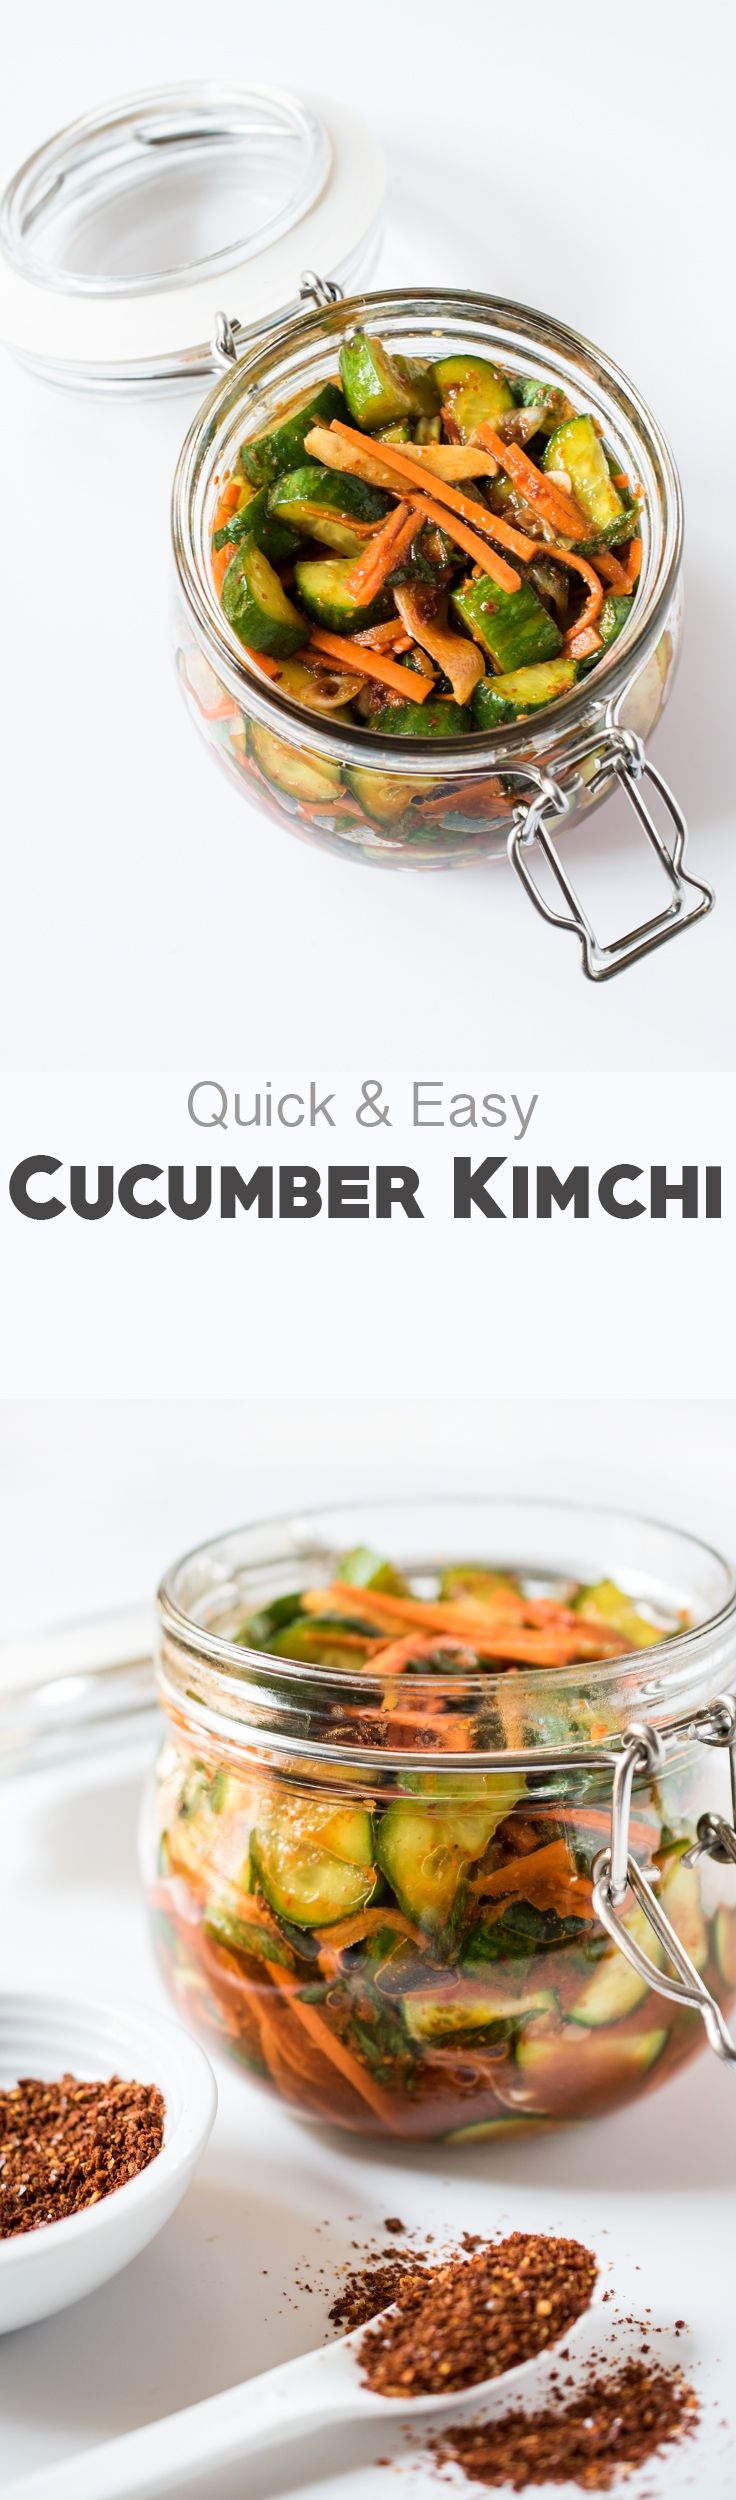 Quick Cucumber Kimchi - great on it's own or on a hamburger or hotdog!